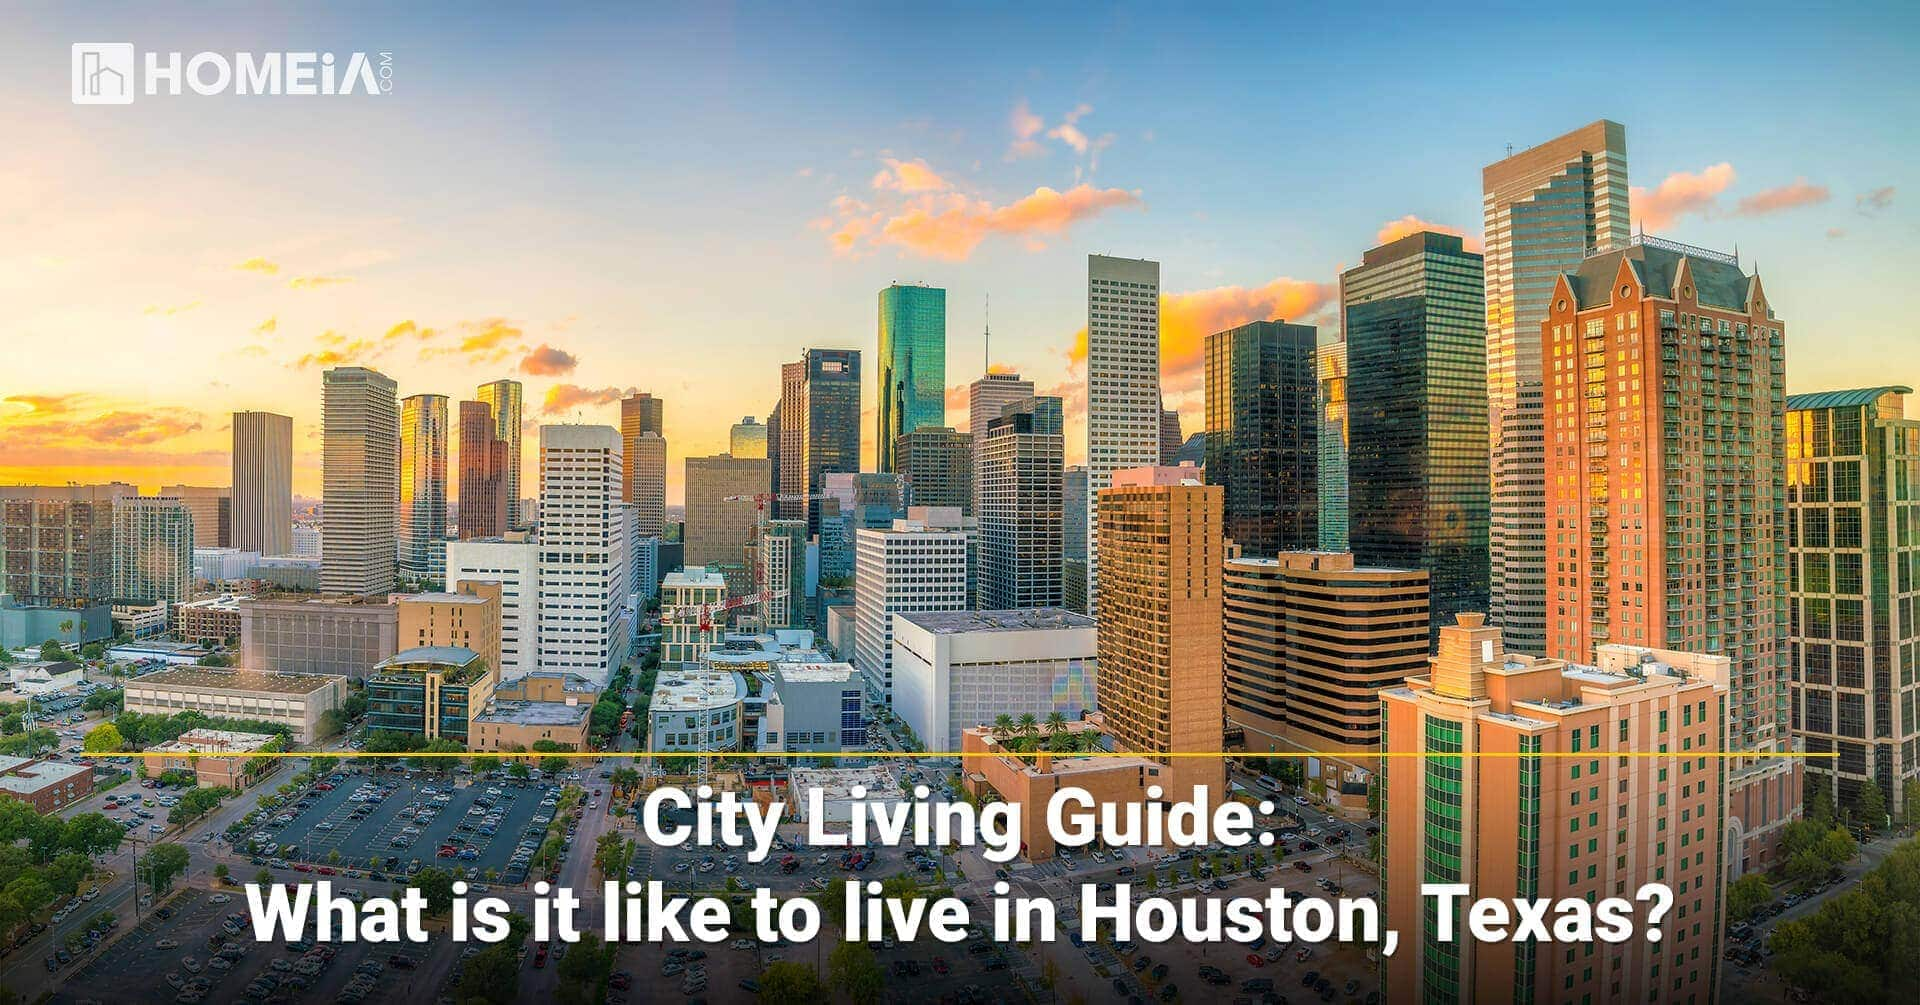 City Living Guide: What is it like to live in Houston, Texas?